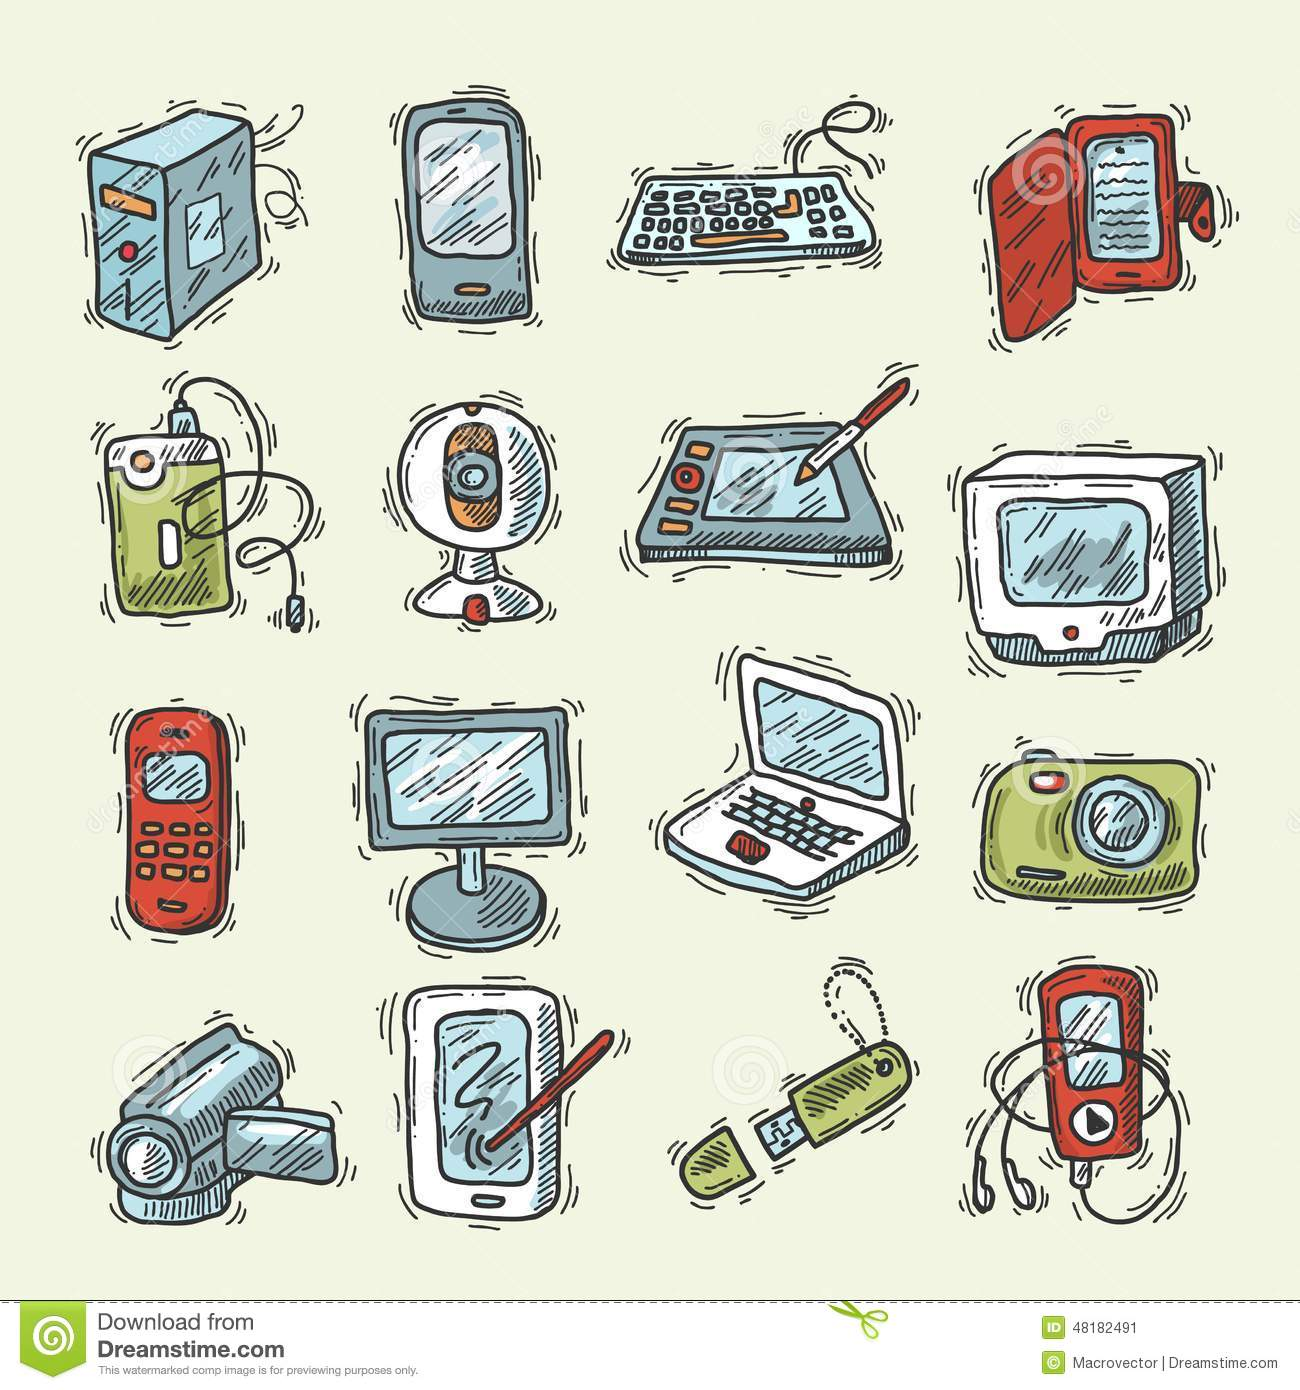 Digital Device Icons Stock Vector - Image: 53474817